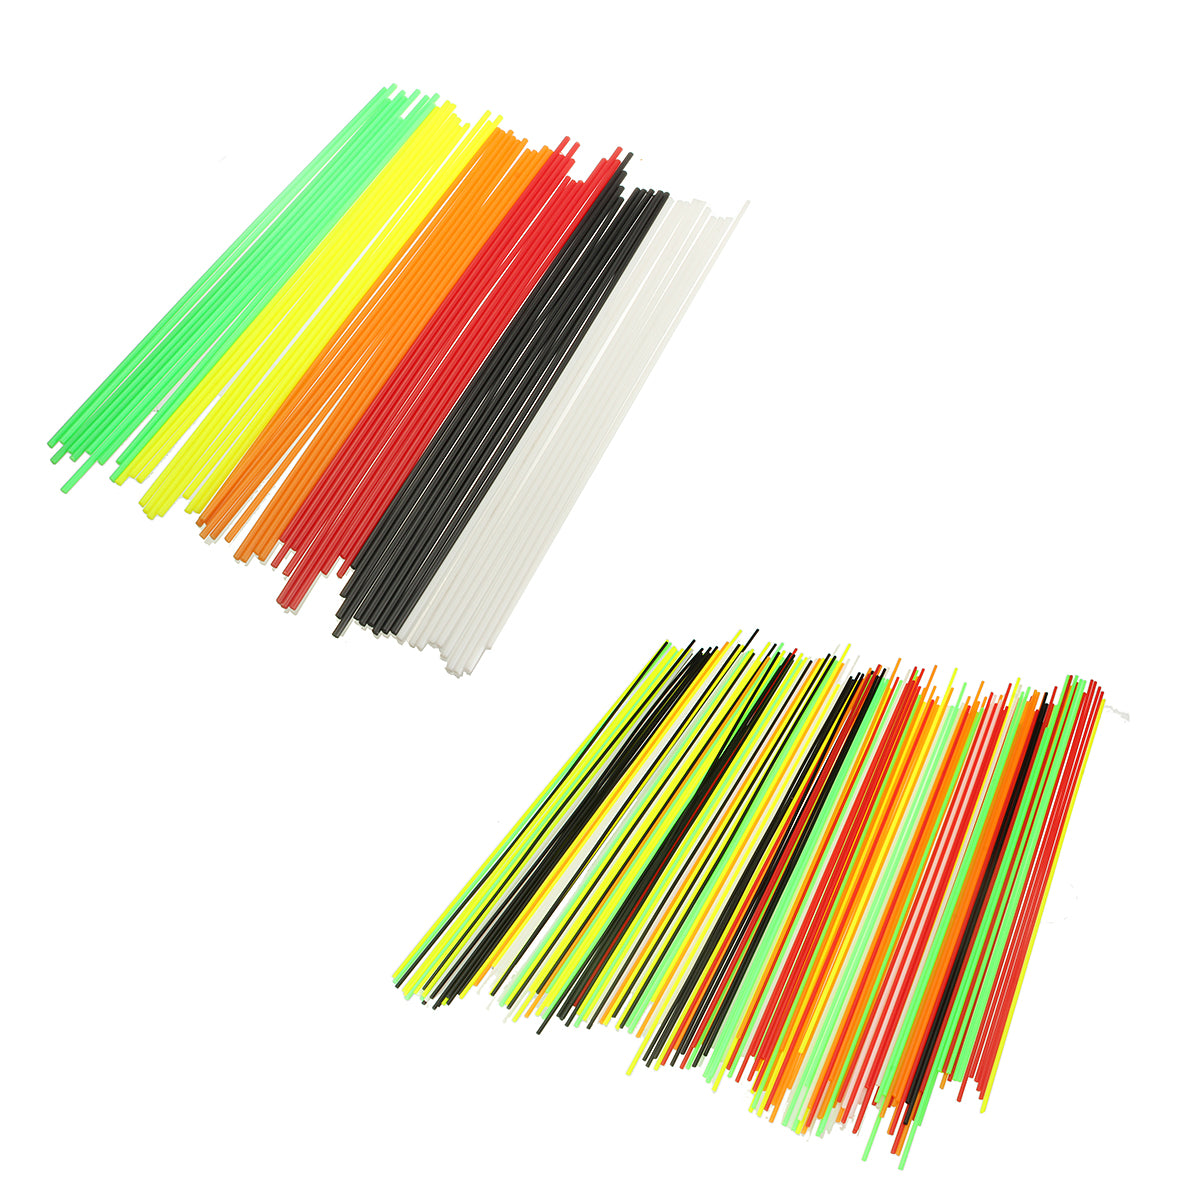 25cm Length 6 Colors 1.75-3.00mm PLA Filament For 3D Printer